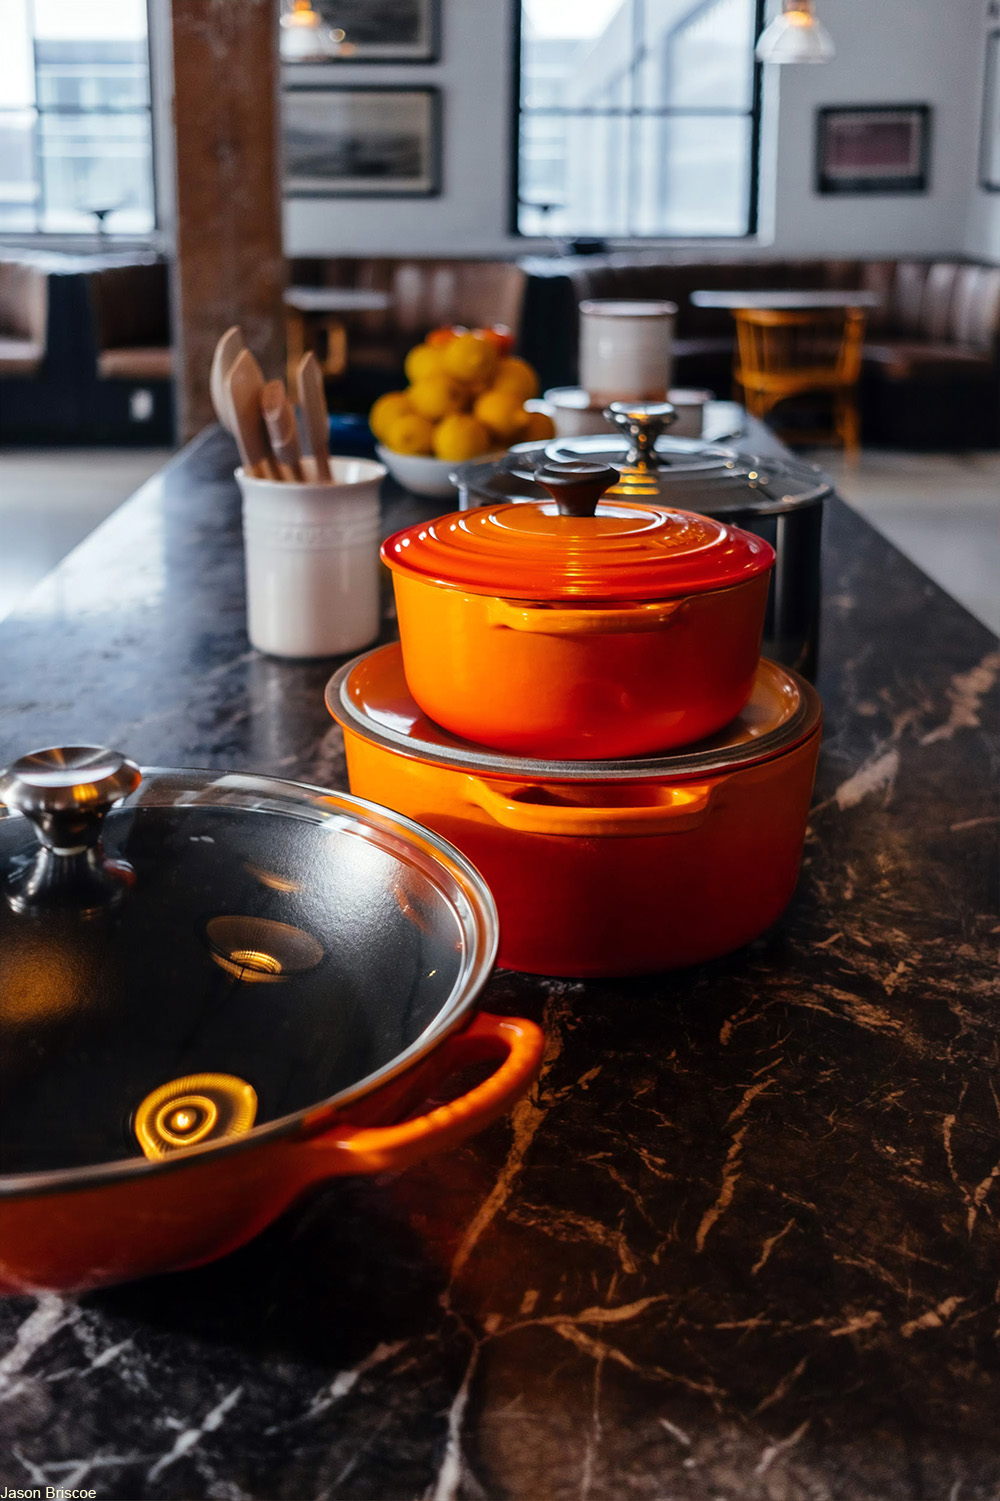 selection of lidded pots and pans on a countertop